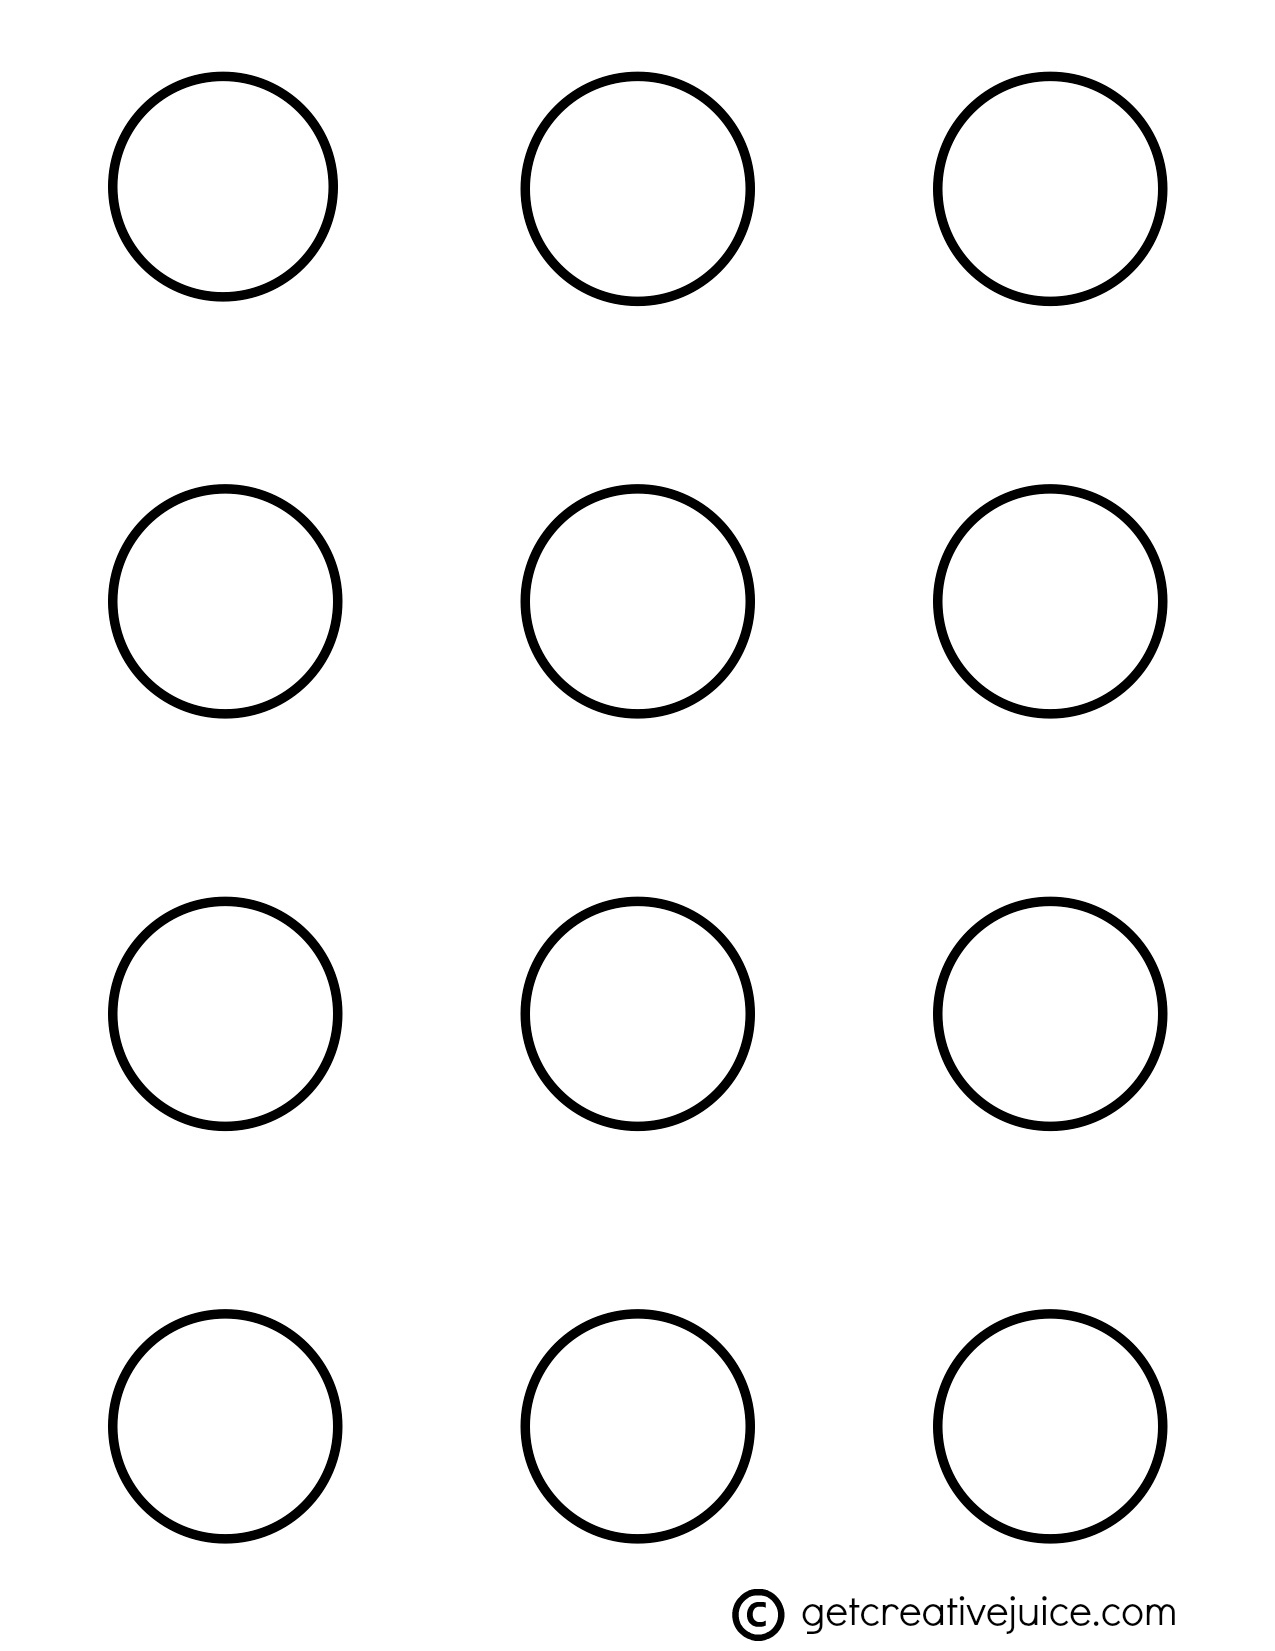 8 Images of 1.5 Inch Circle Template Printable